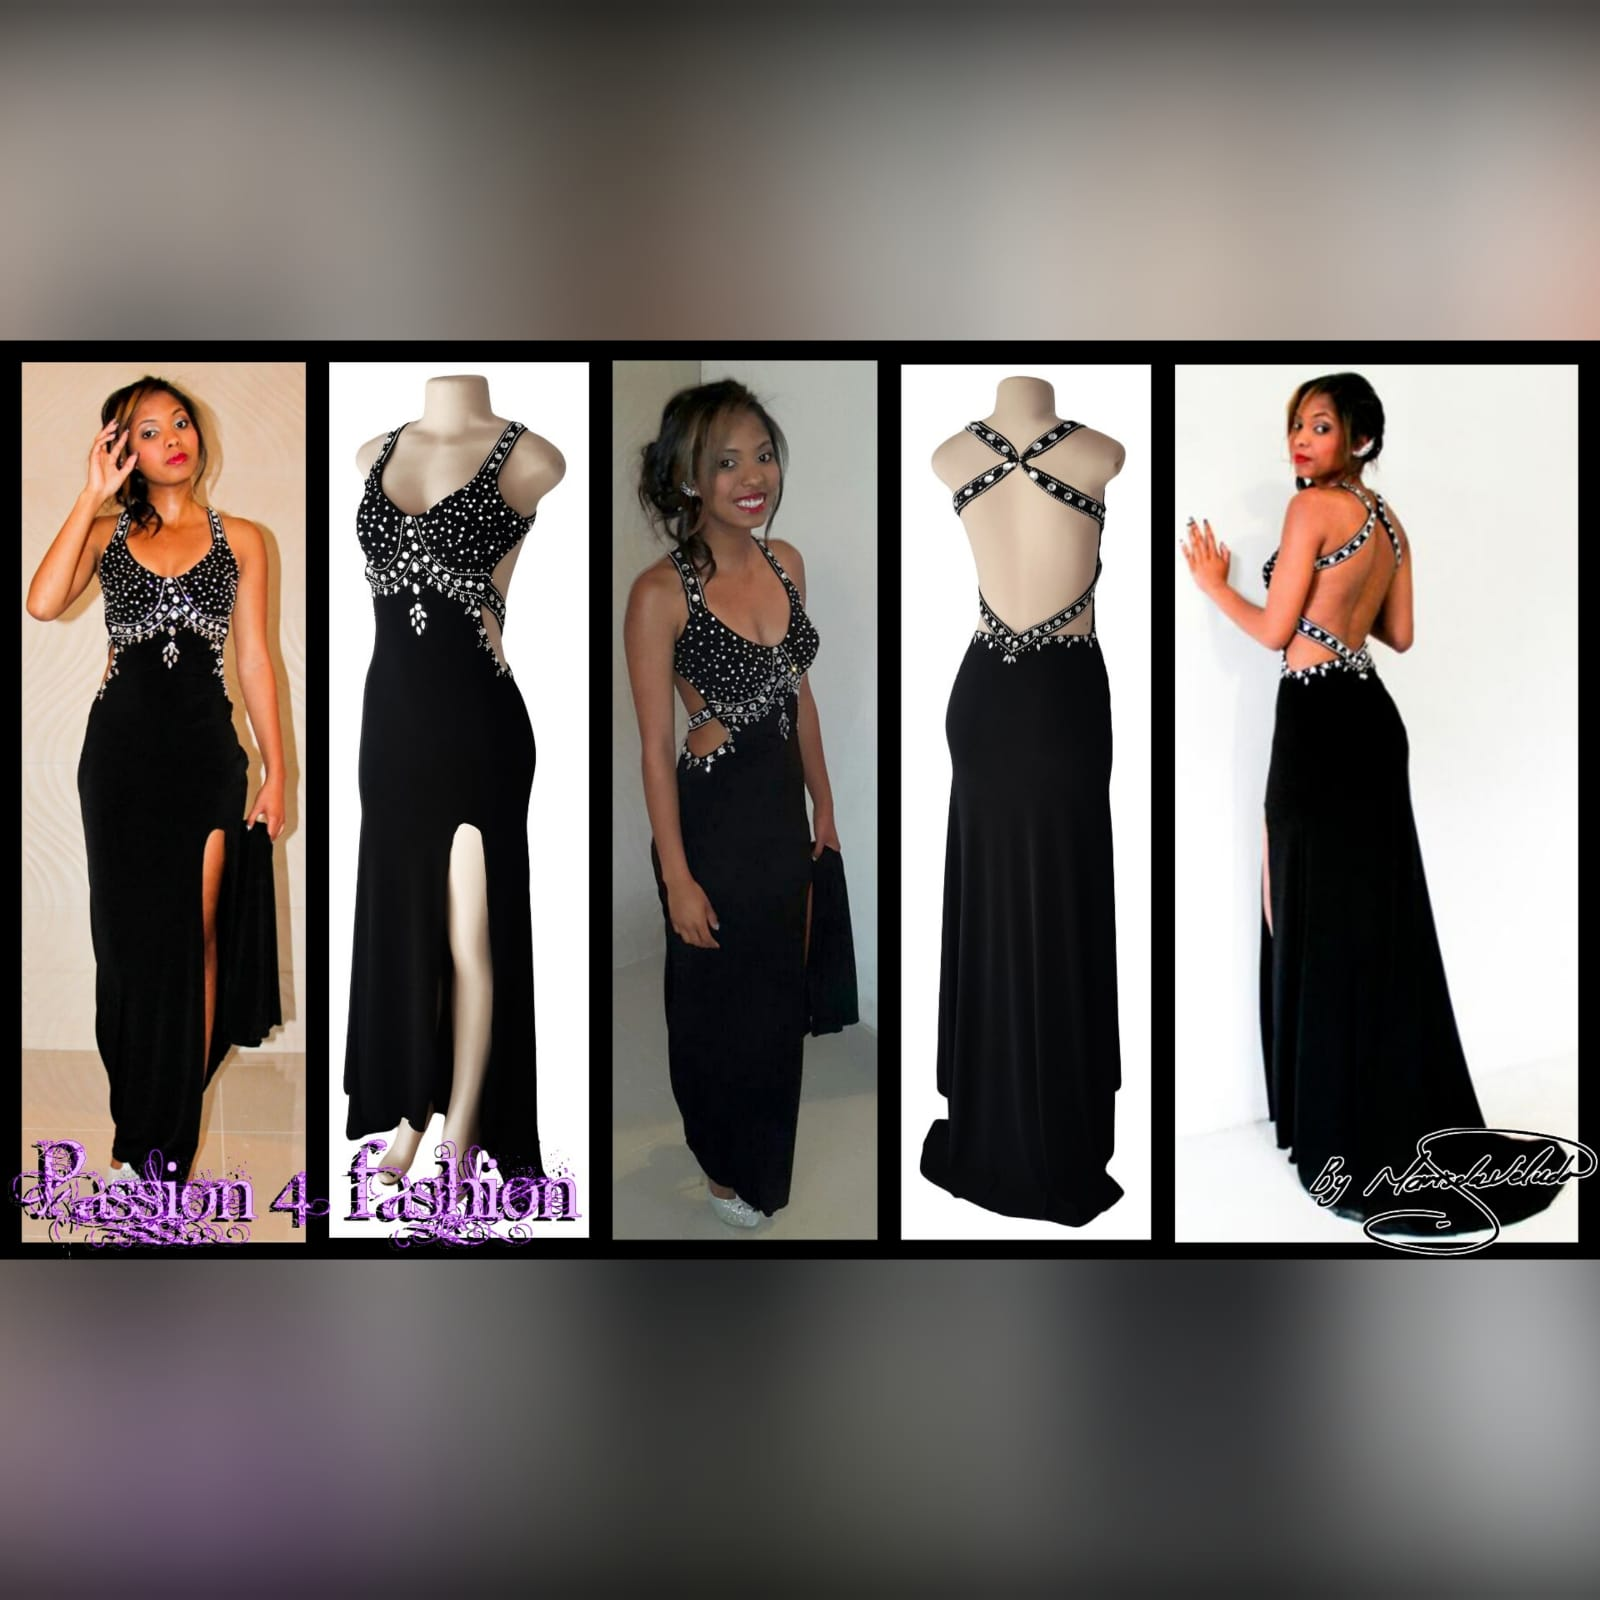 Black and silver prom dress with a low open back 4 black & silver prom dress with a low open back, a slit and train. Slightly open on the side of the tummy. Back straps and bodice detailed with silver beads and diamante